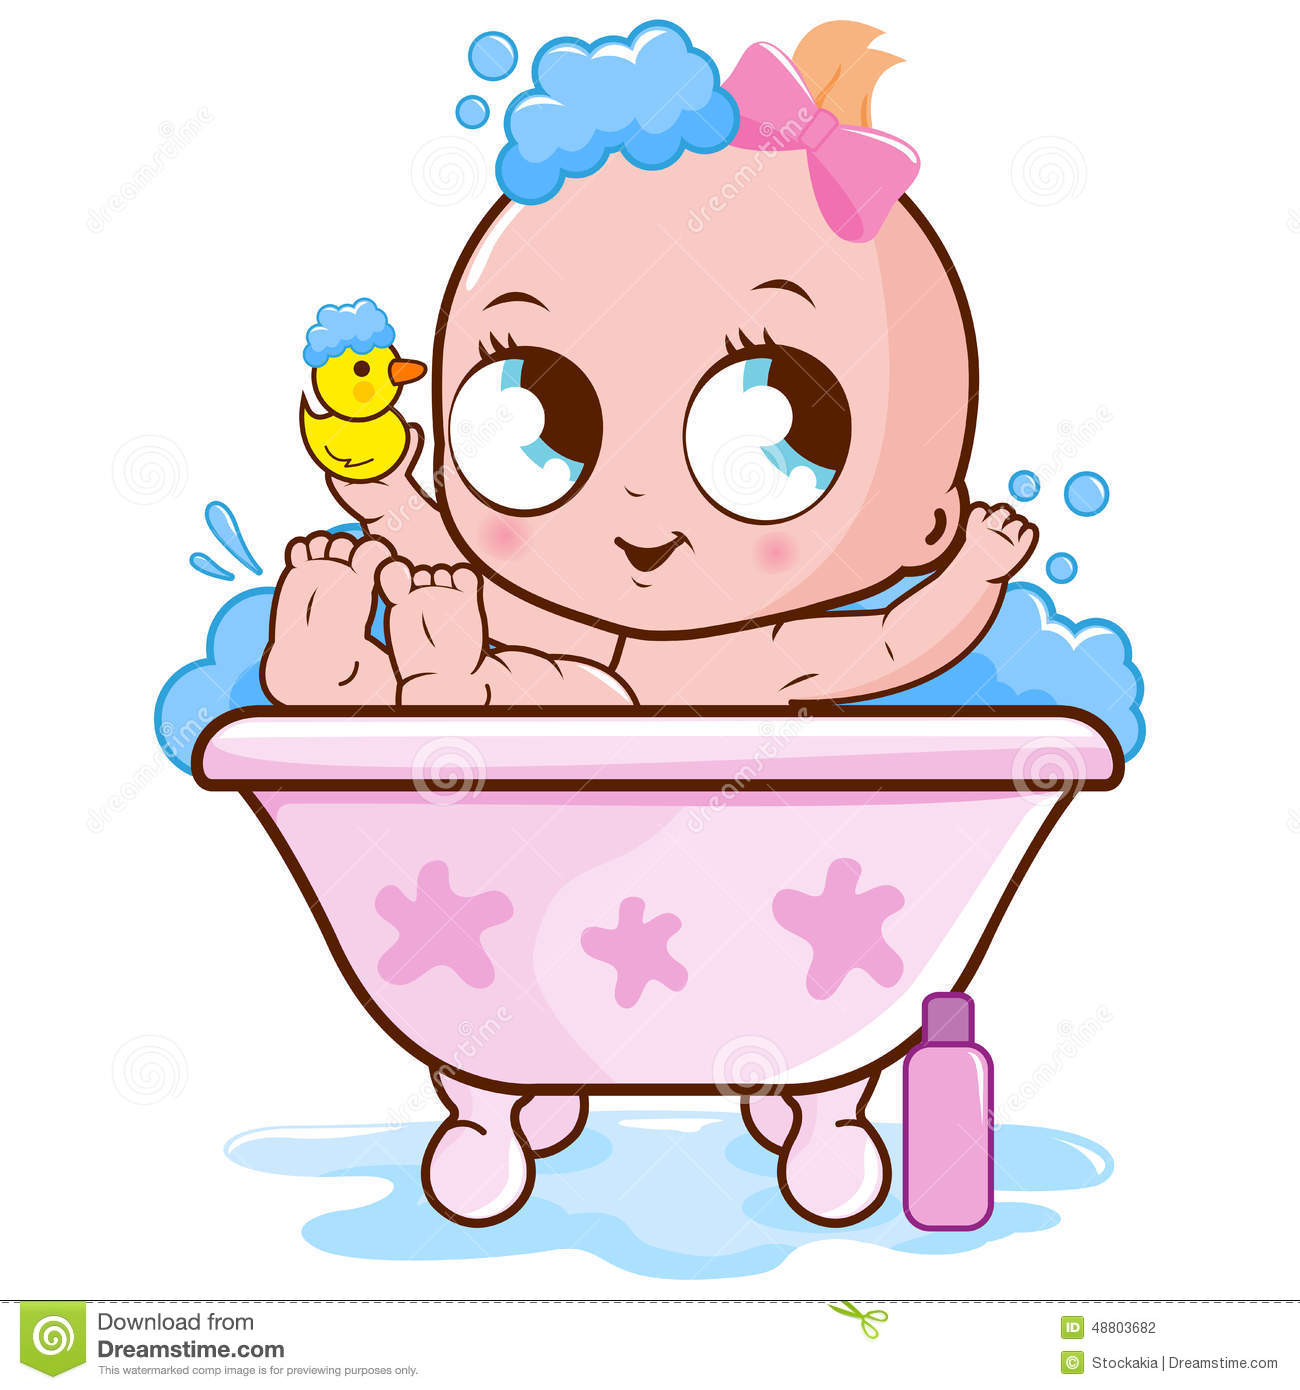 B b prenant un bain illustration de vecteur image 48803682 for Photo dans un bain